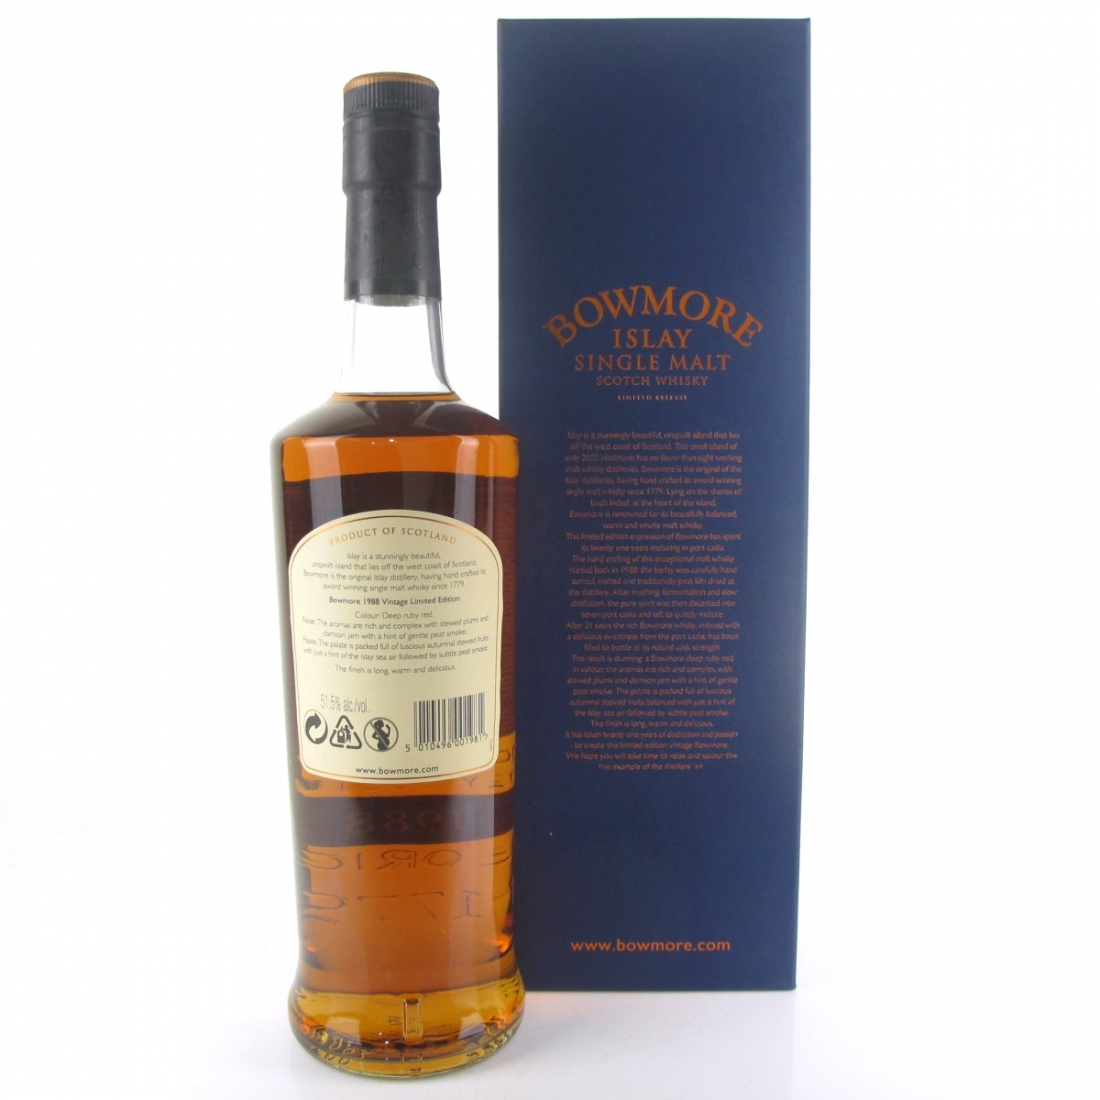 Bowmore 1988 Port Cask 21 Year Old